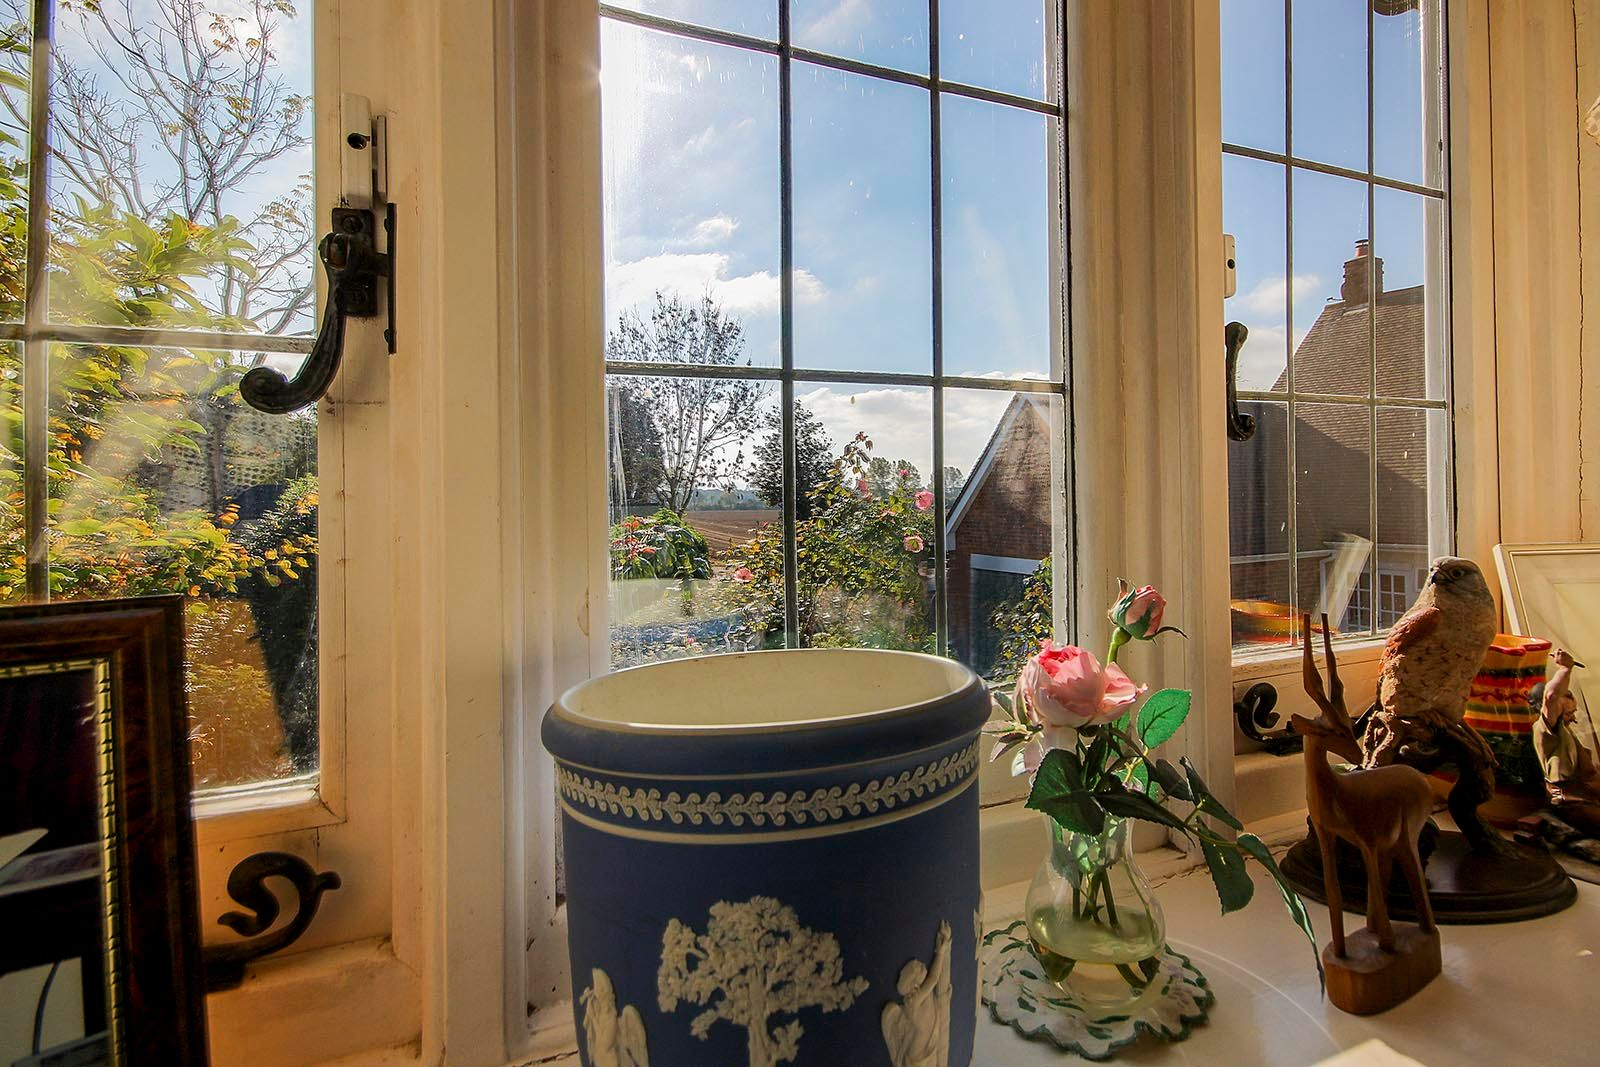 2 bed House for sale in Arundel - Lifestyle (Property Image 15)